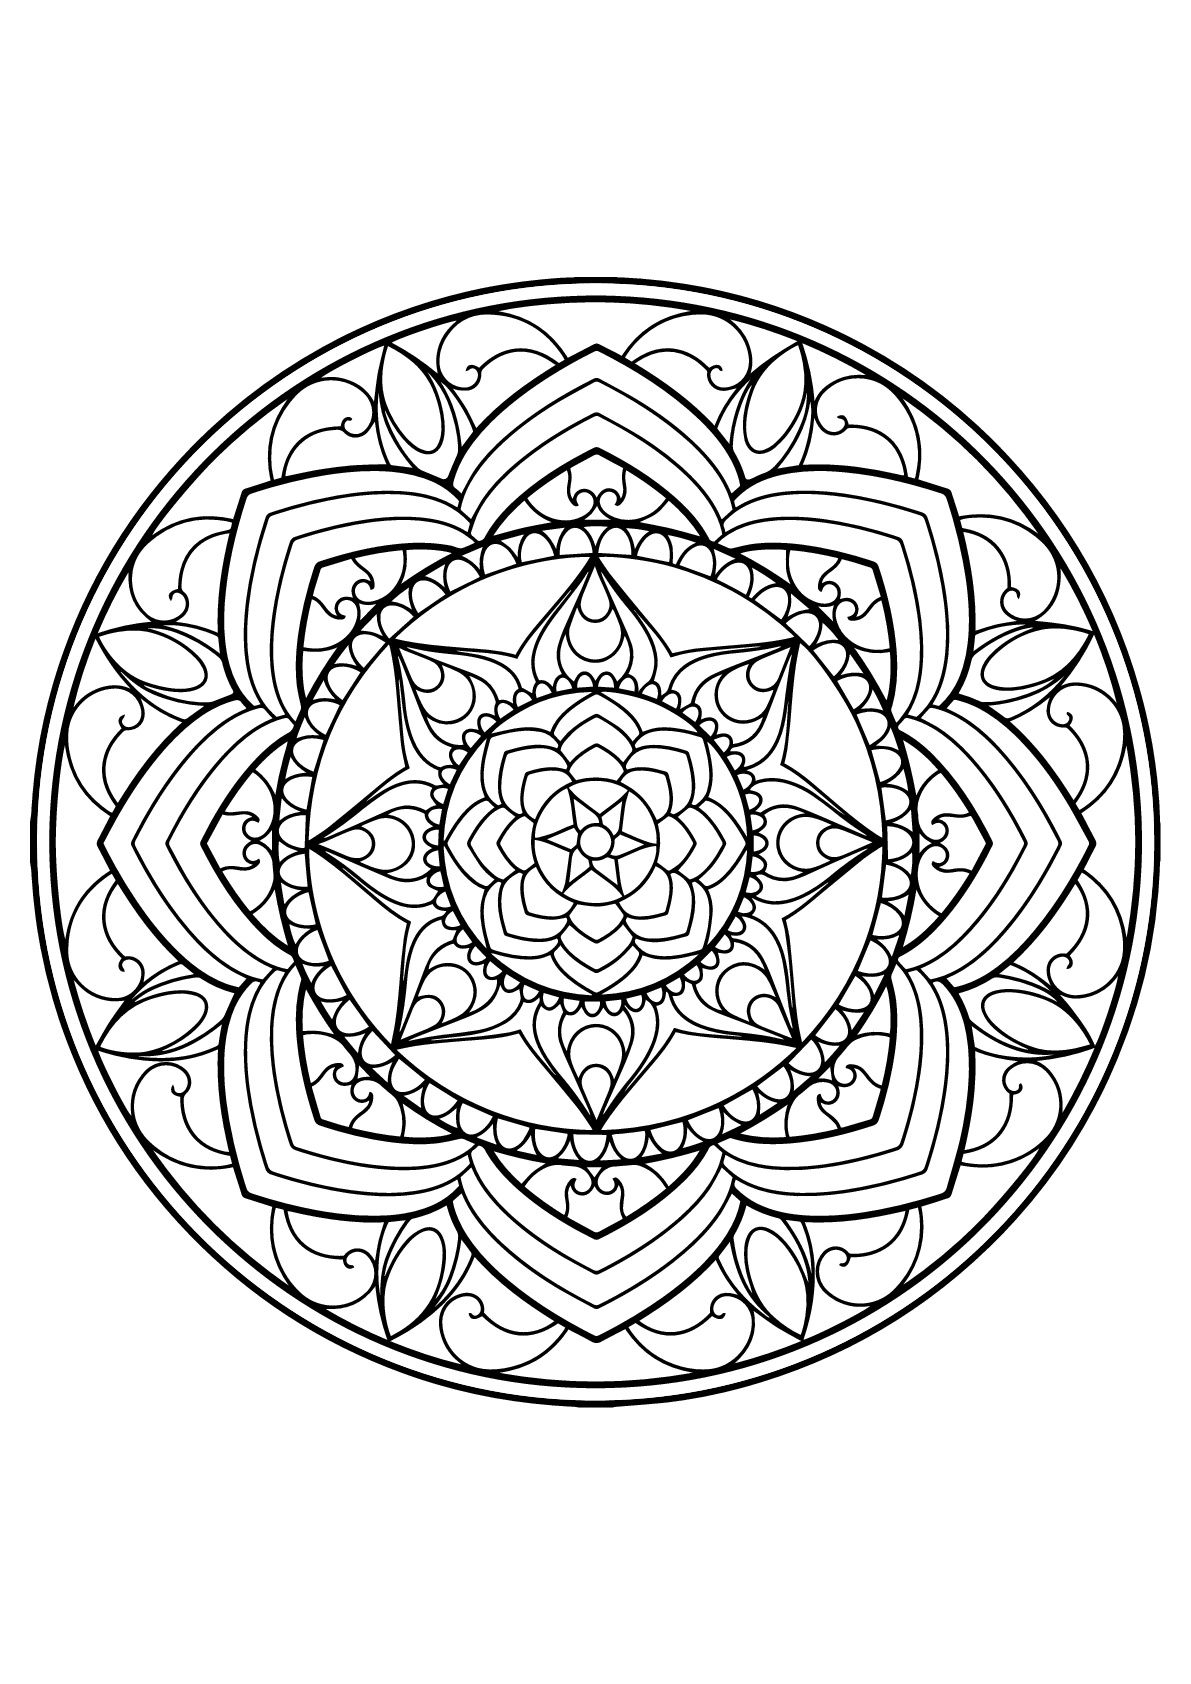 Here Are Difficult Mandalas Coloring Pages For Adults To Print For Free Mandala Is A San Coloring Book Pages Printable Coloring Book Mandala Coloring Pages